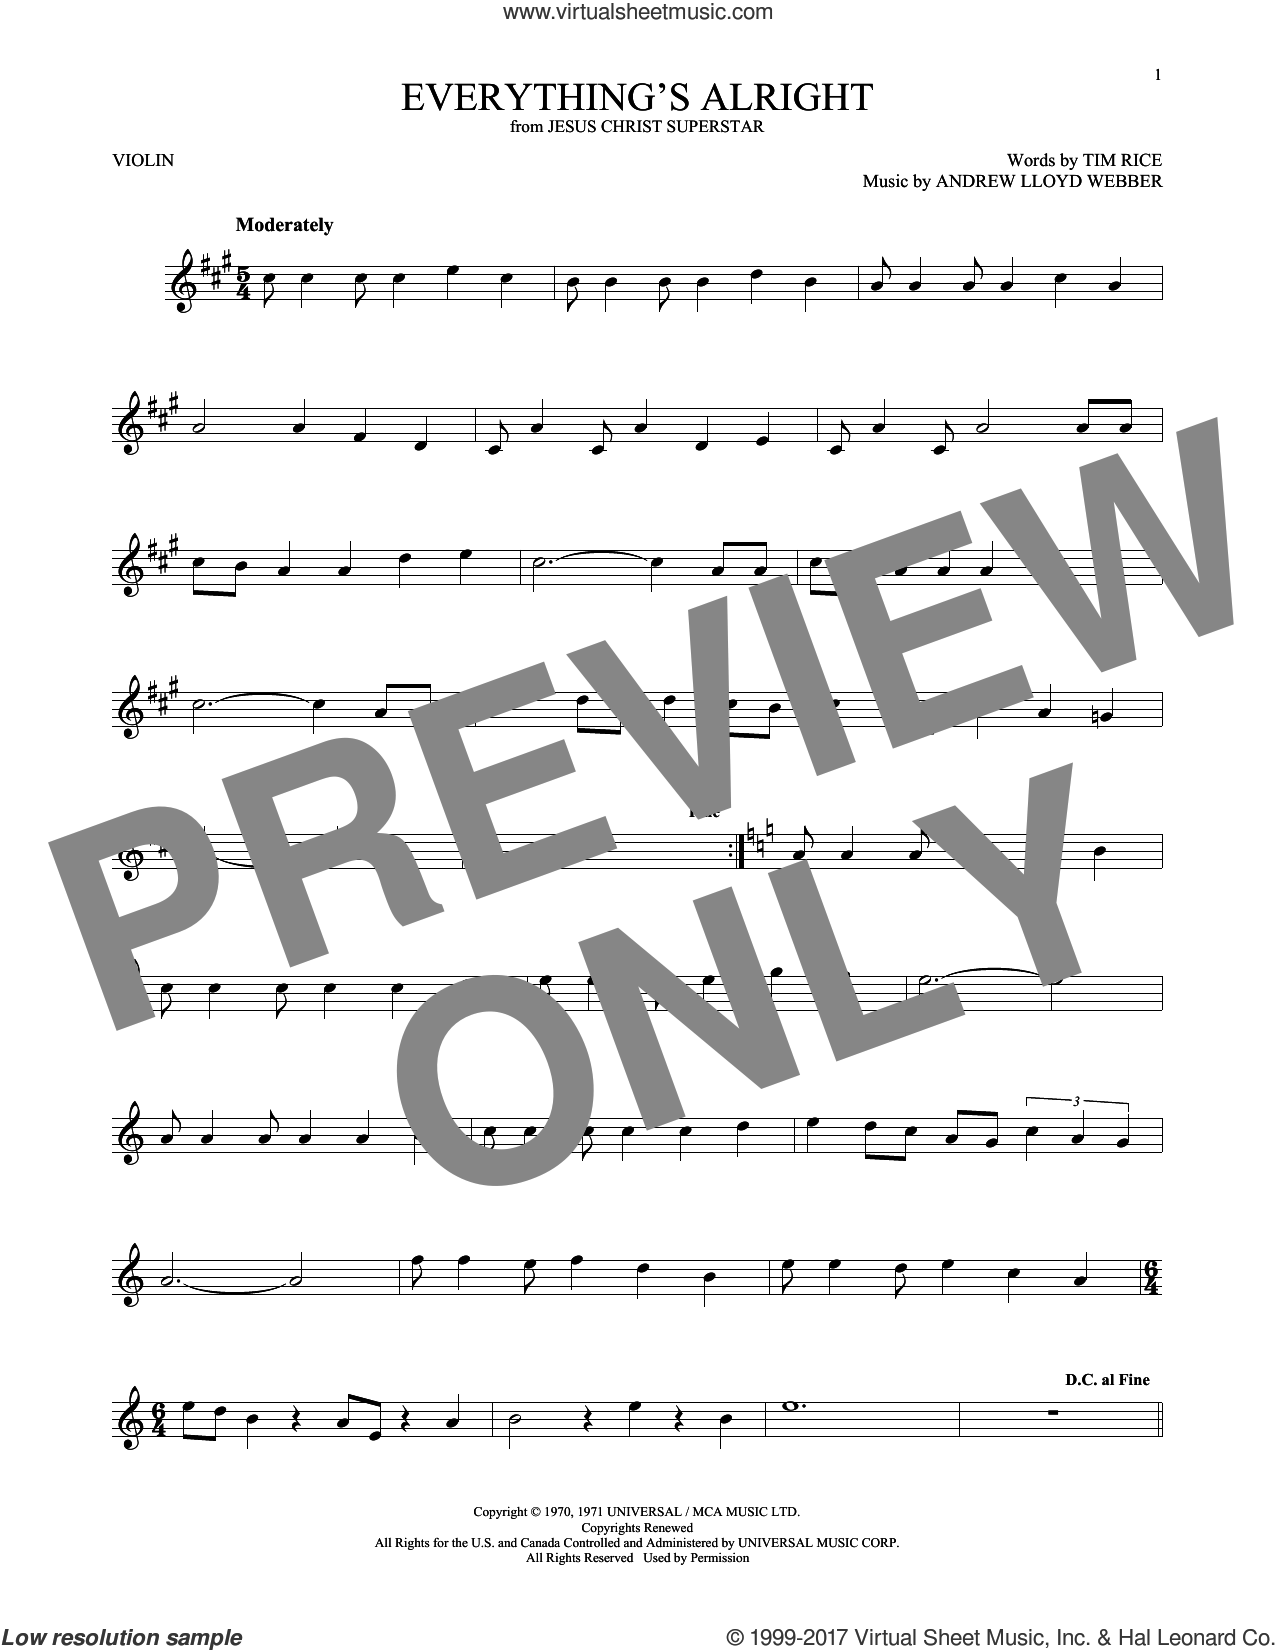 Everything's Alright sheet music for violin solo by Andrew Lloyd Webber, Yvonne Elliman and Tim Rice, intermediate